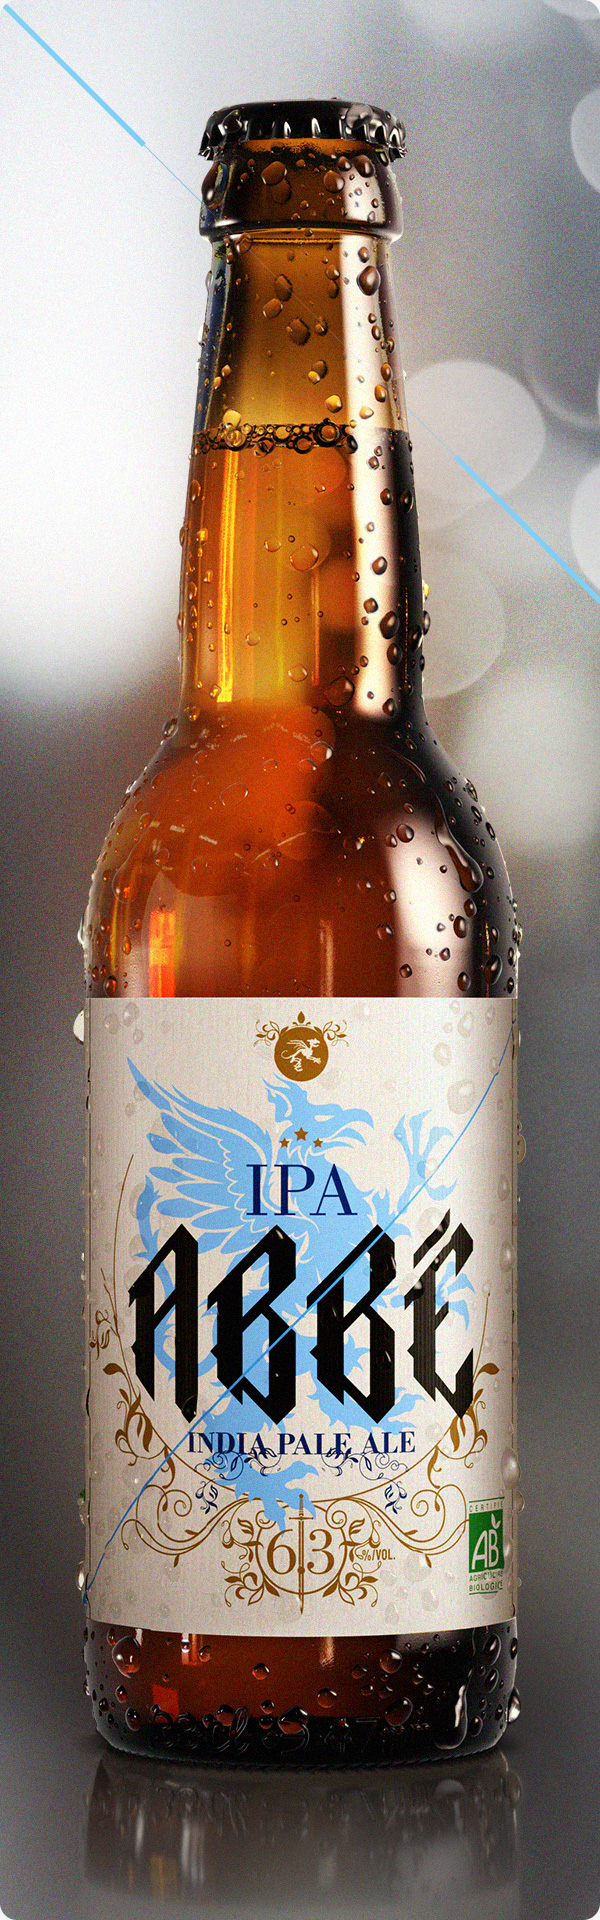 ABBÉ IPA  - Photo 1